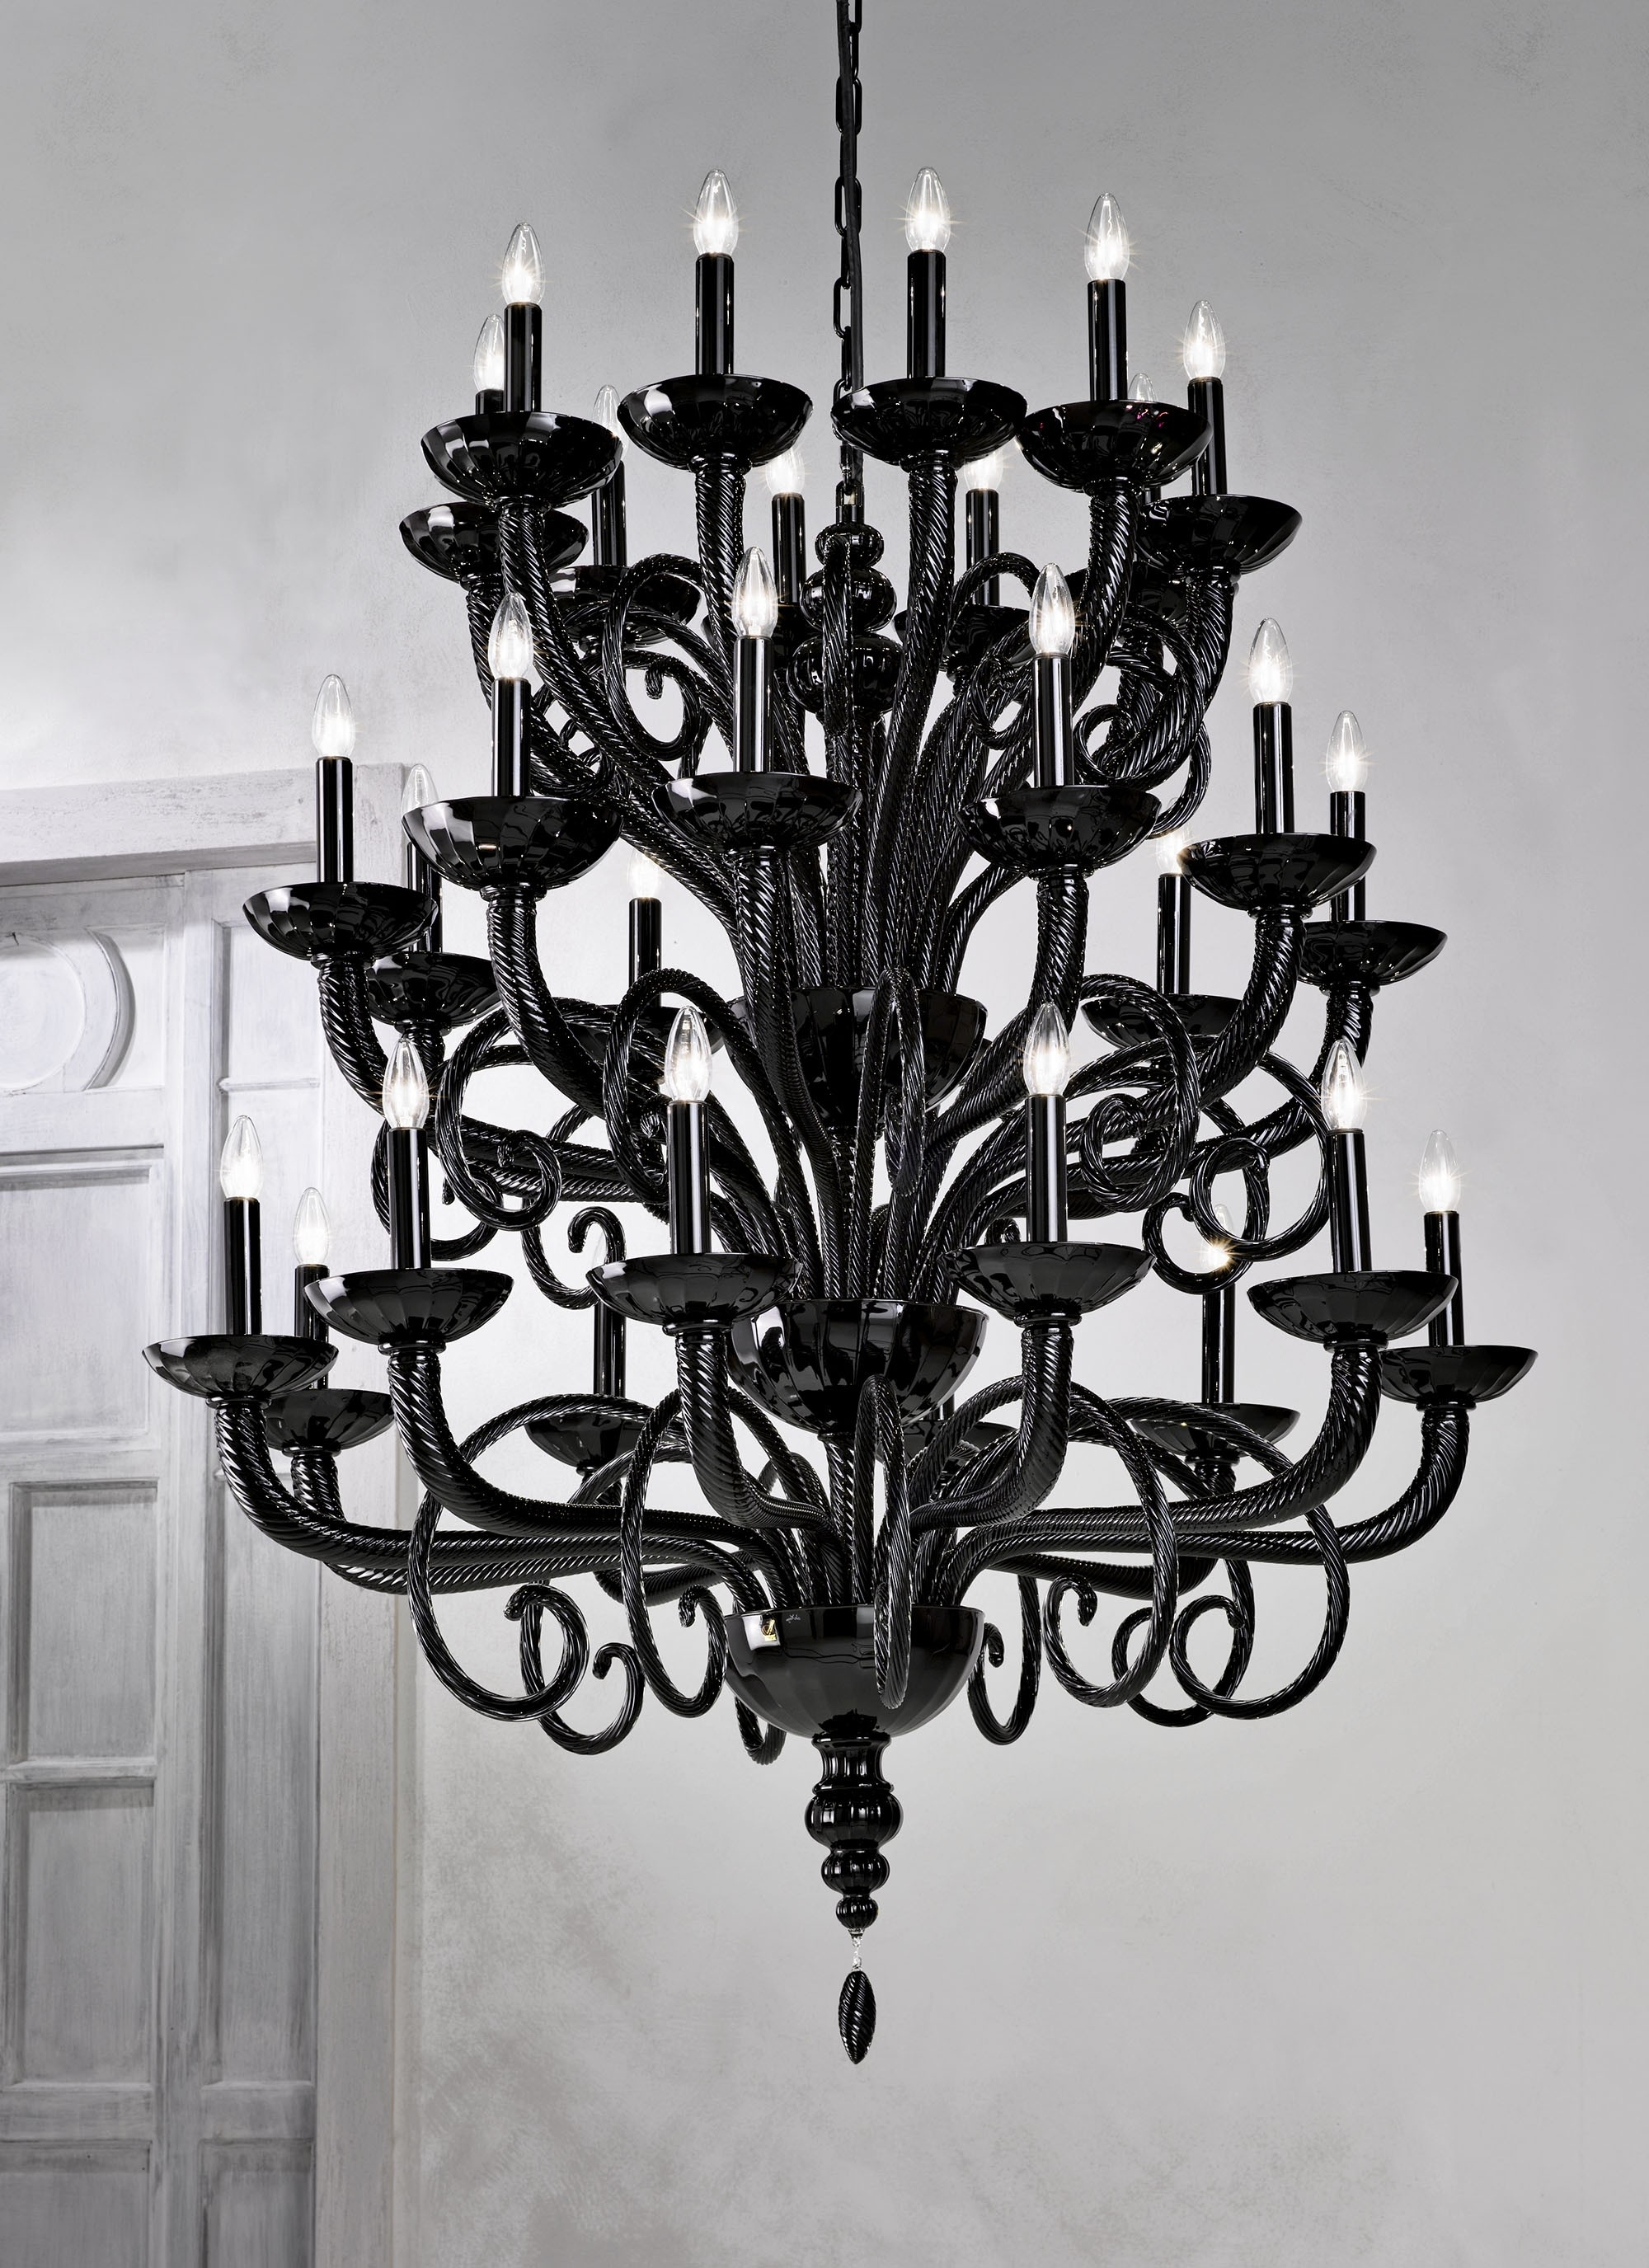 Large Traditional Black Grand Murano Chandelier L6011K30 – Murano Intended For Fashionable Large Black Chandelier (View 3 of 15)